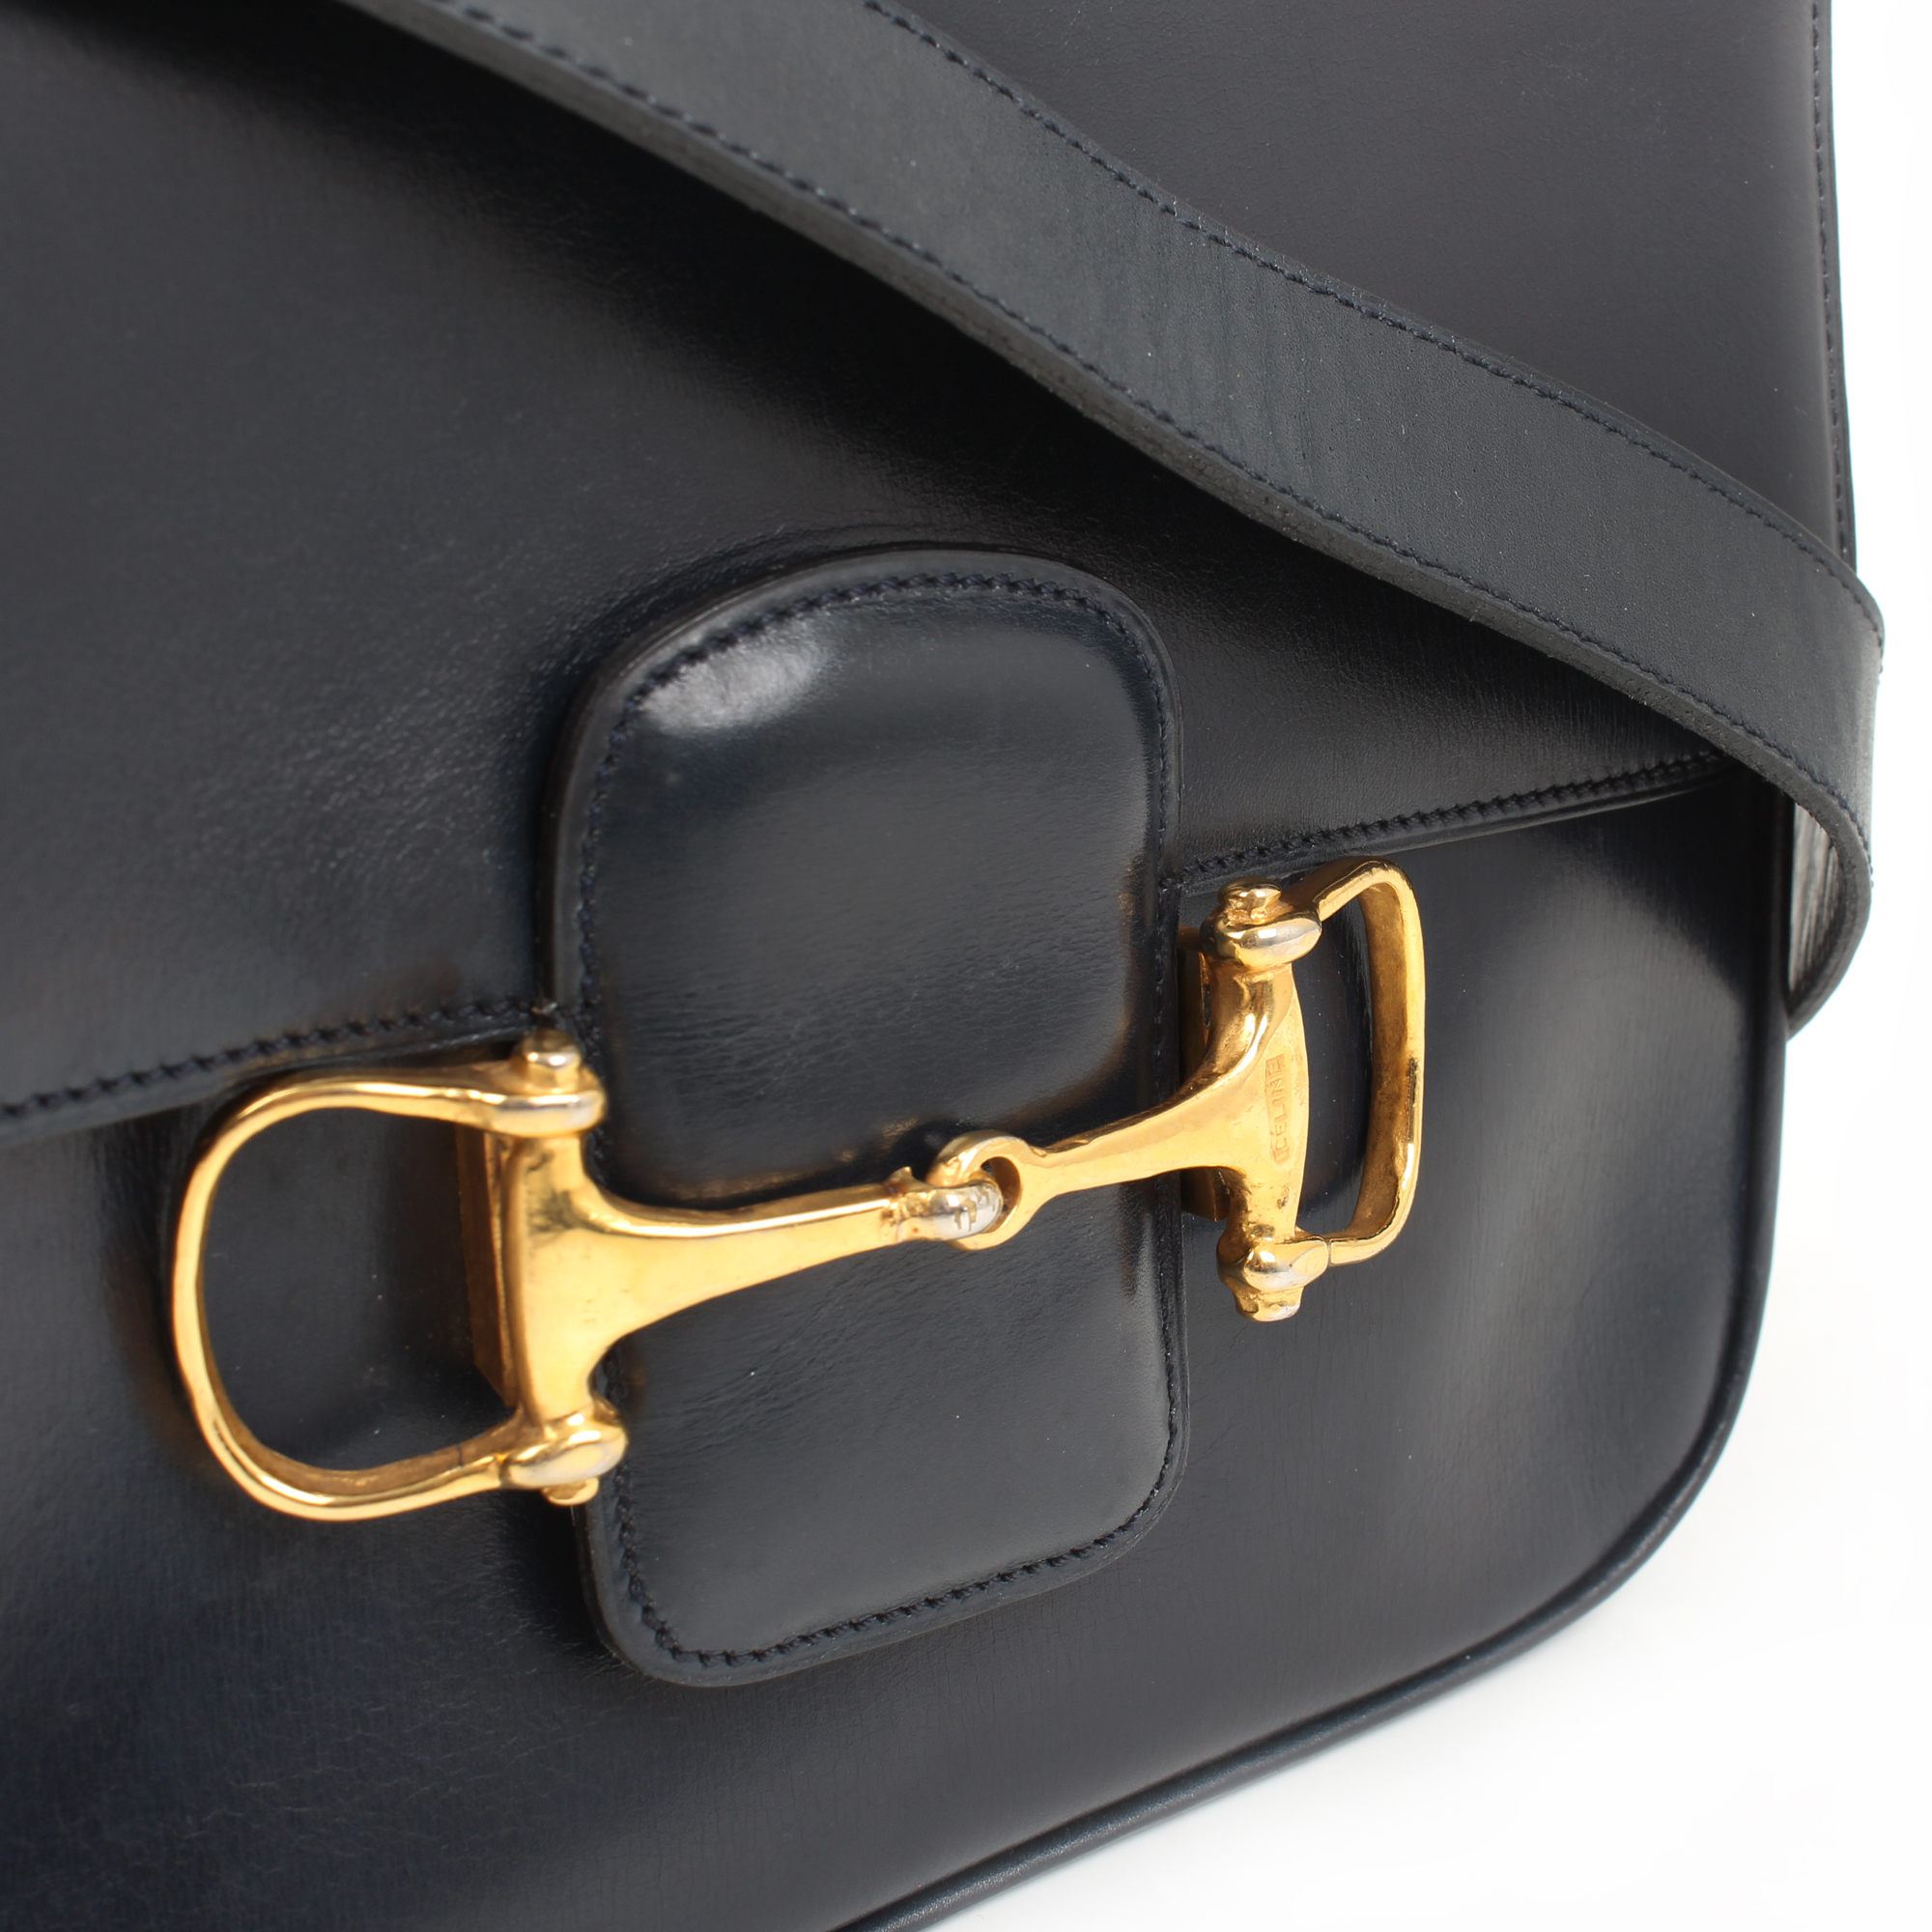 Hardware detail from celine vintage shoulder bag